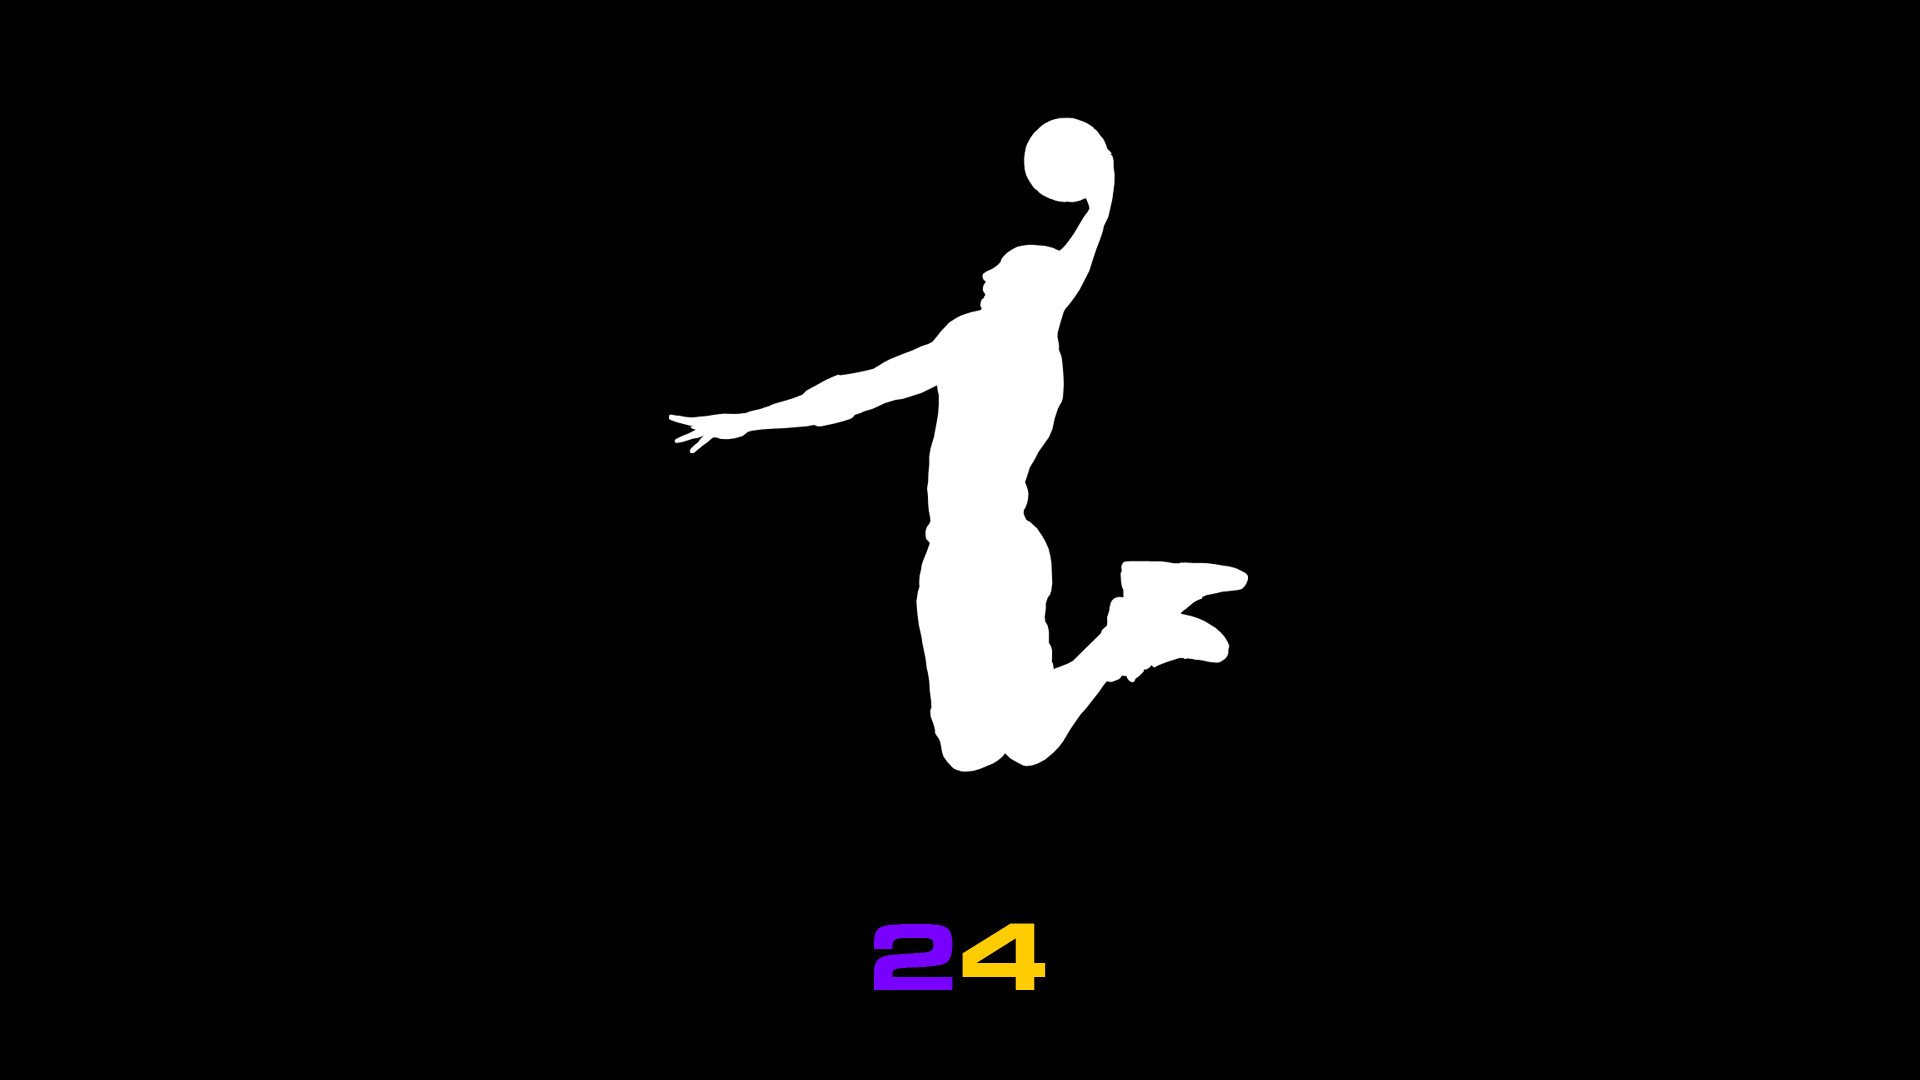 Air Jordan Logo Wallpaper Hd 69 Images